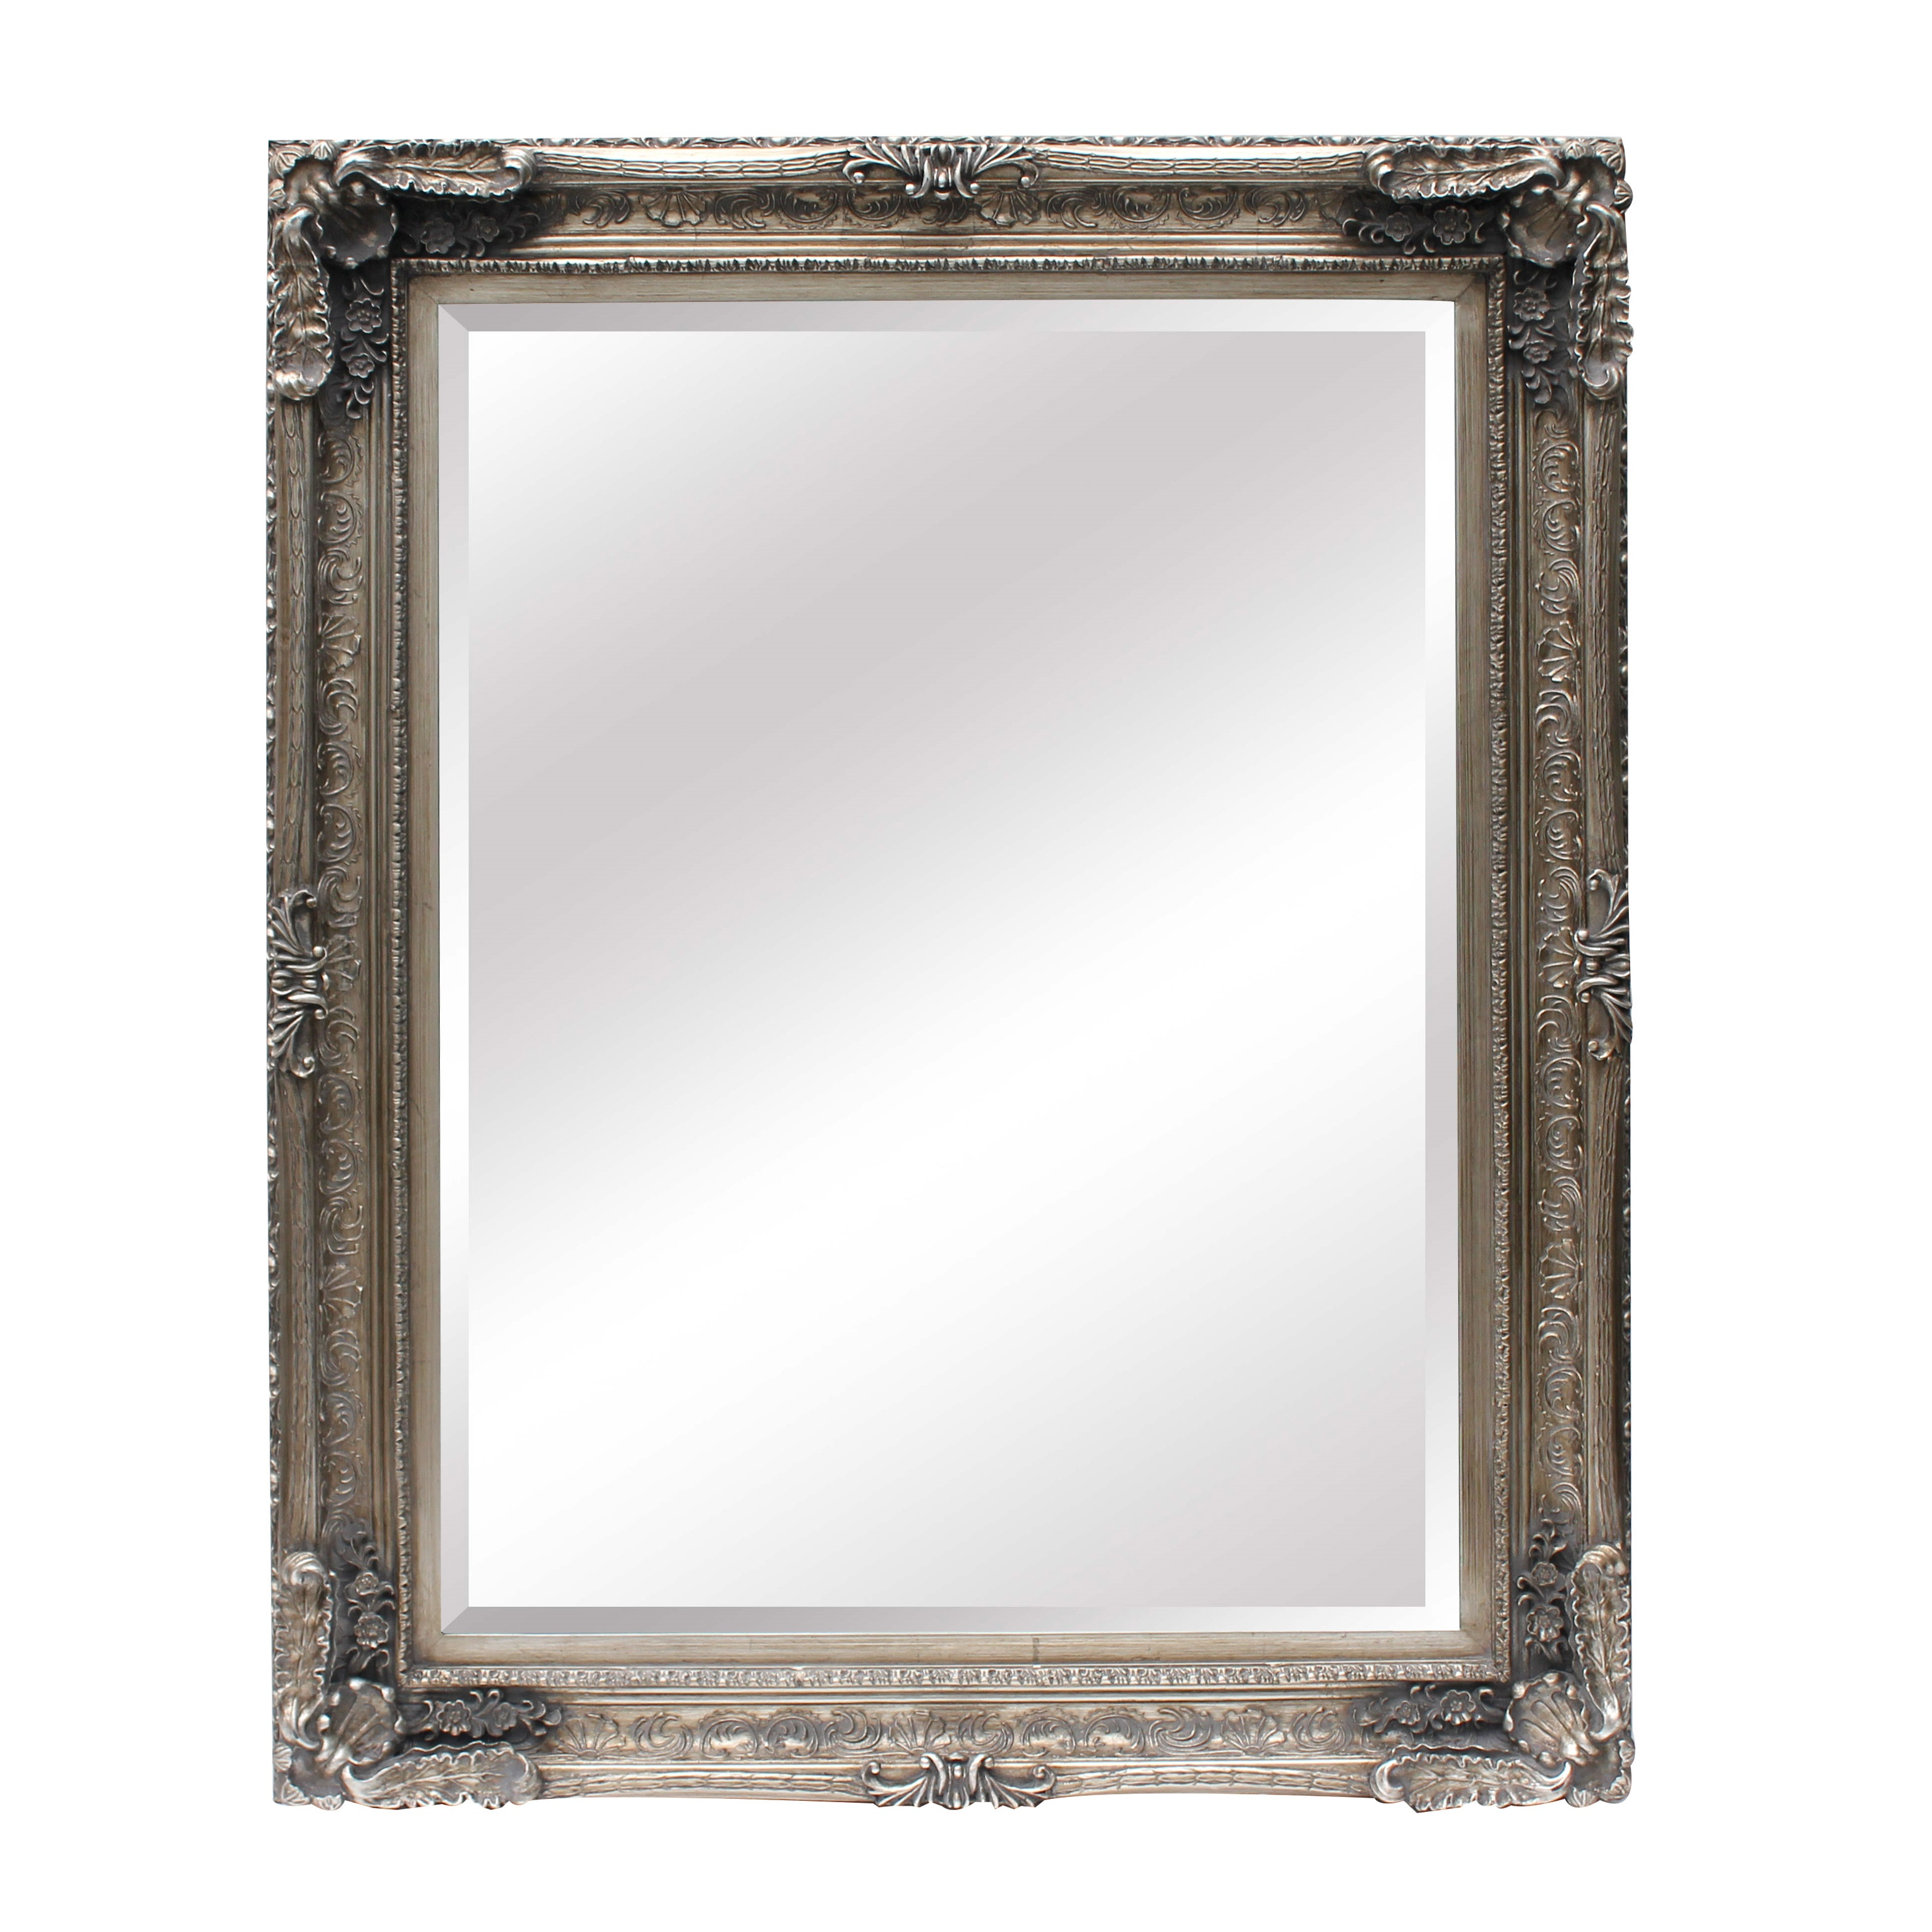 Large Ornate Silver Wall Mirror